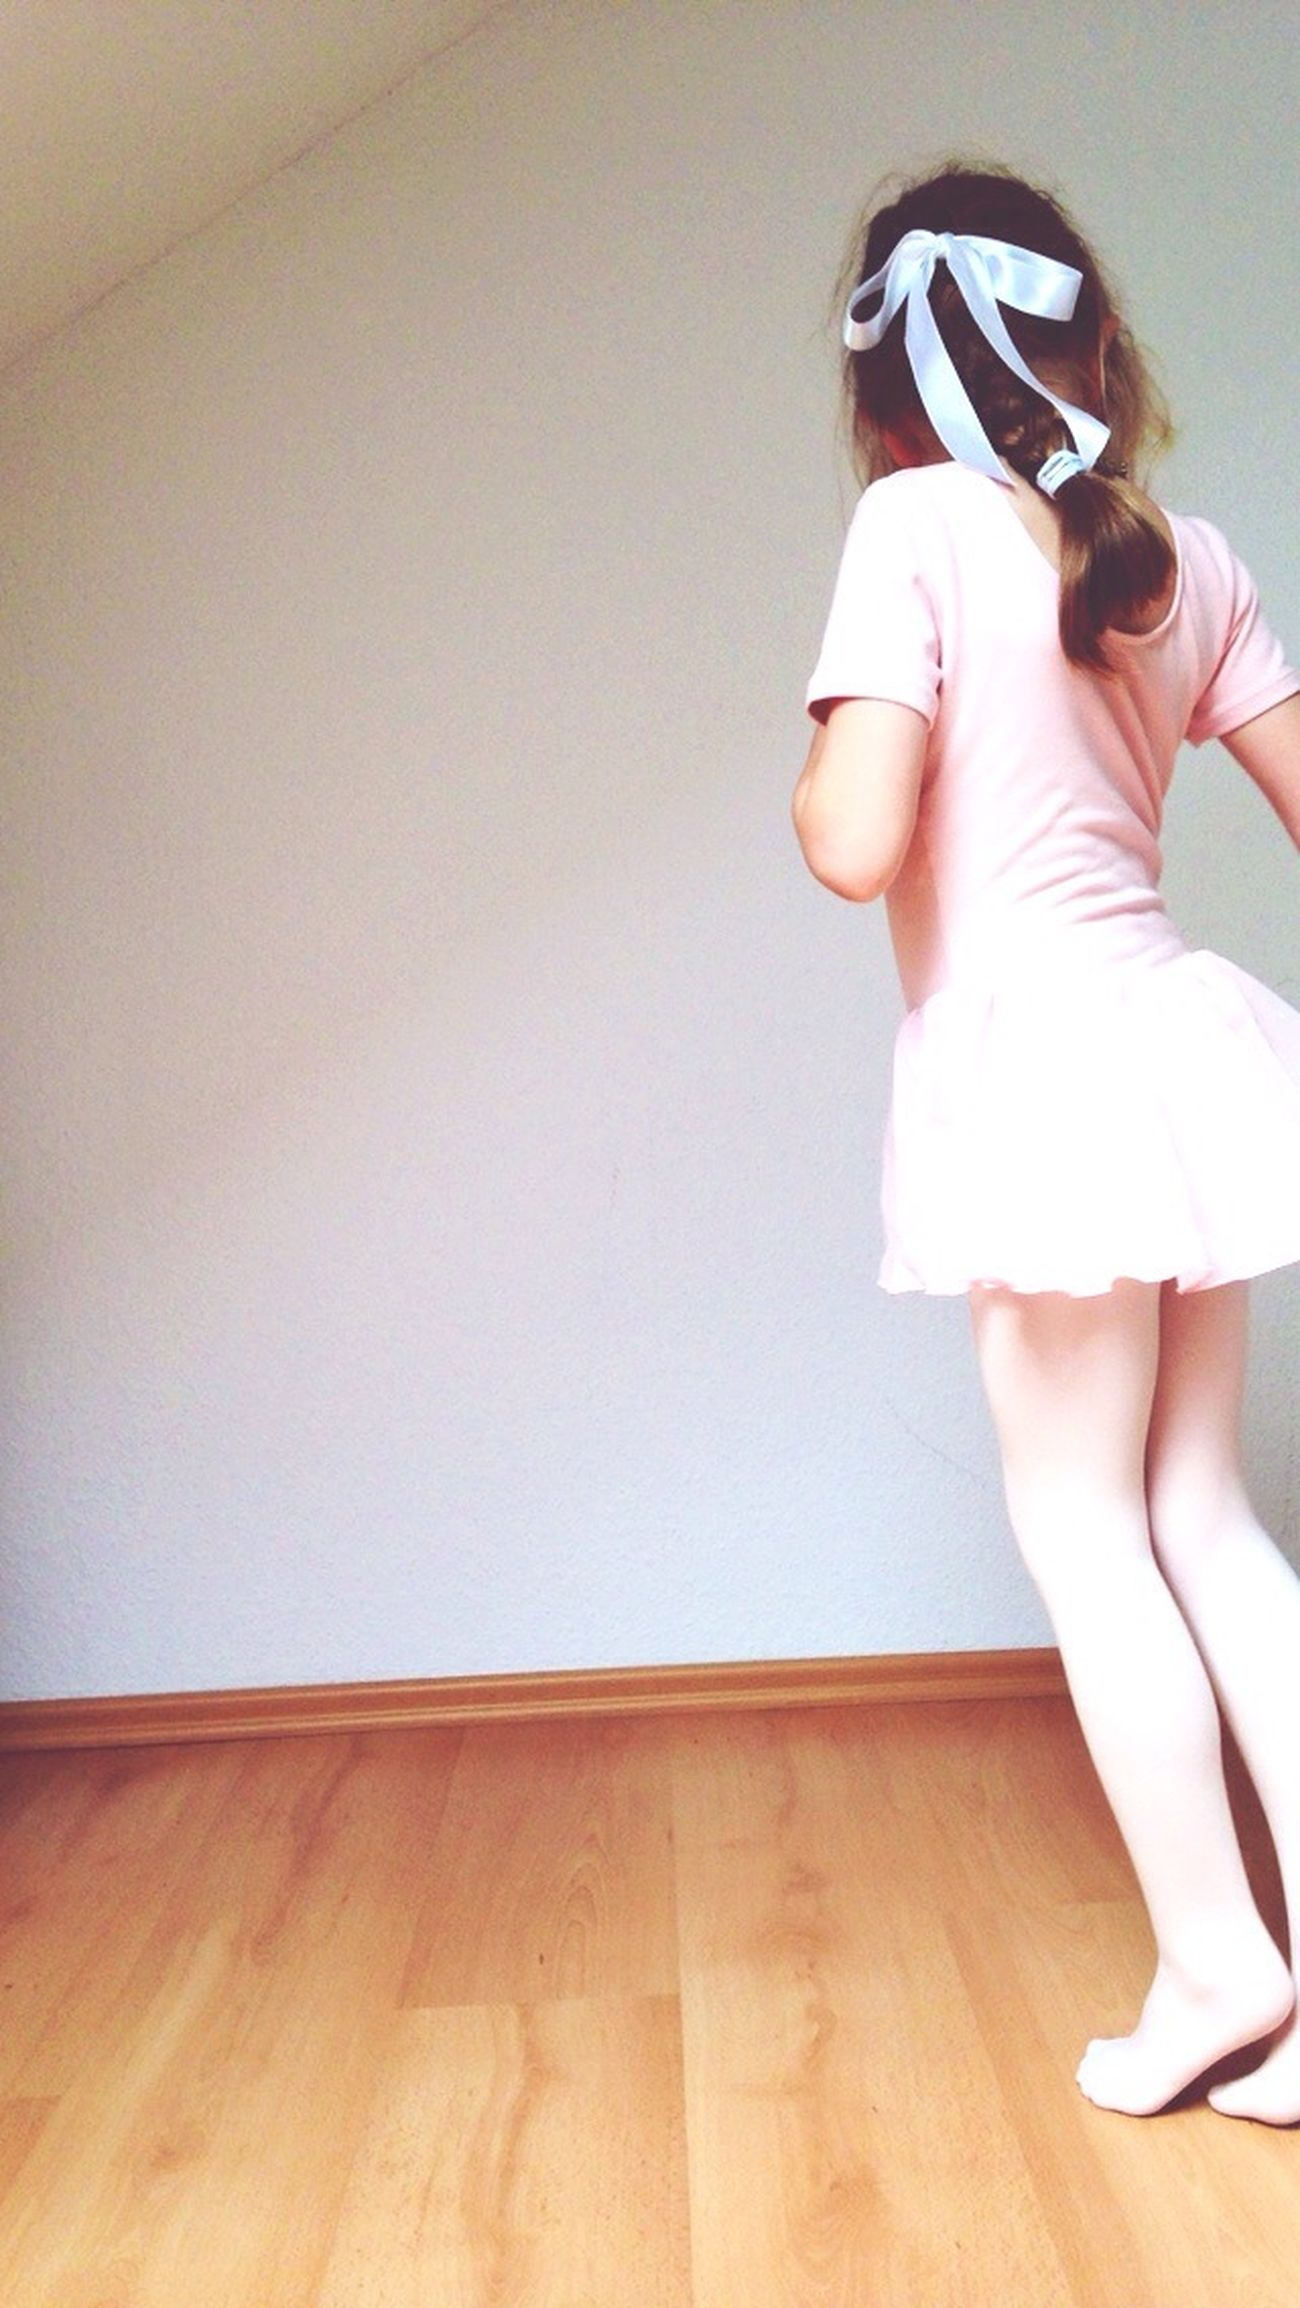 Ballerina Littlesister Love Check This Out